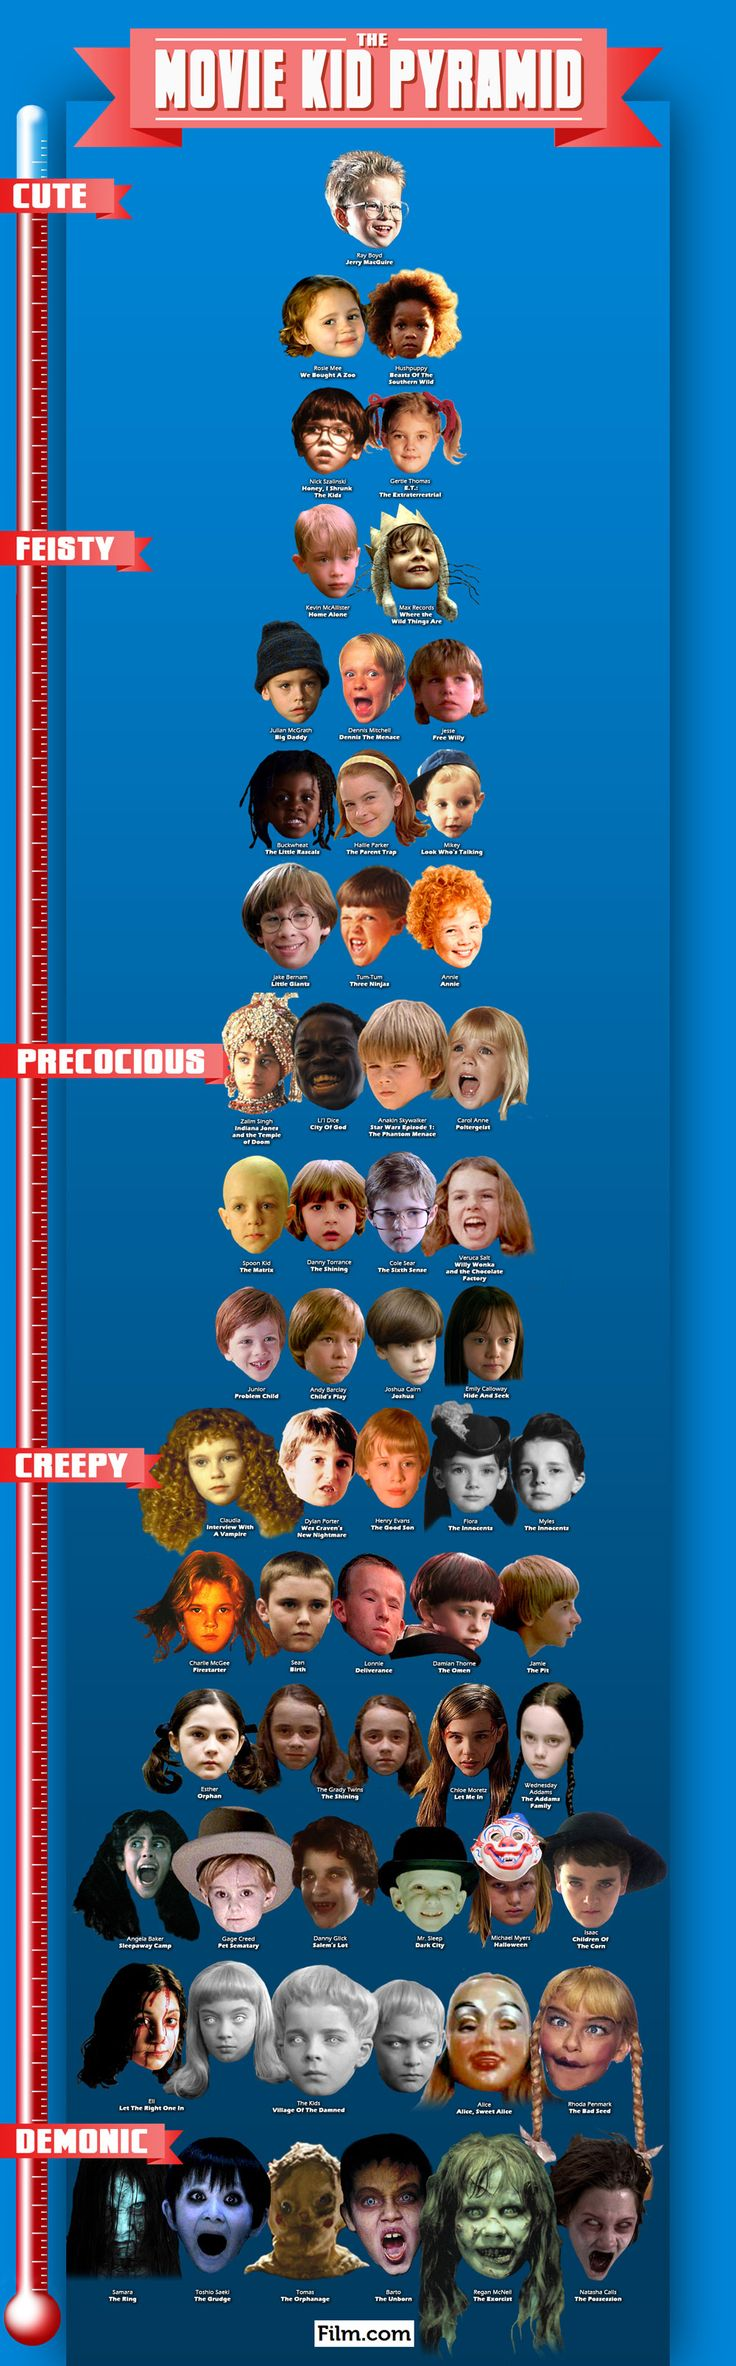 Kids in movies from Cute to Demonic